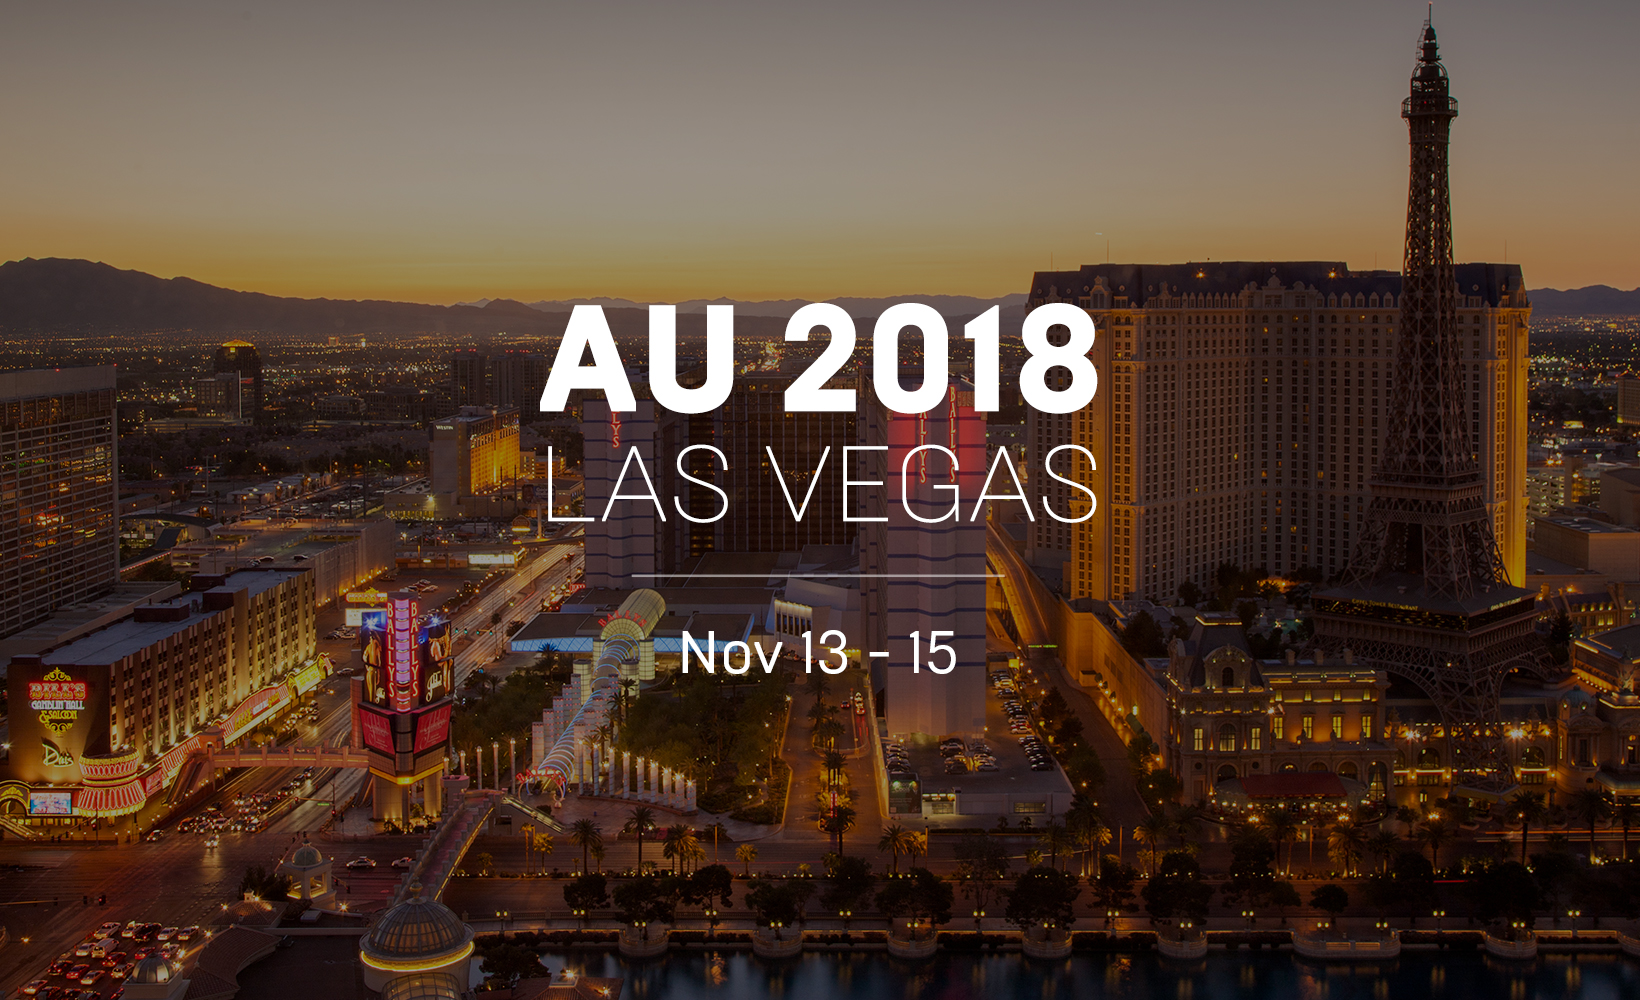 Join The Unreal Enterprise Team At Autodesk University 2018